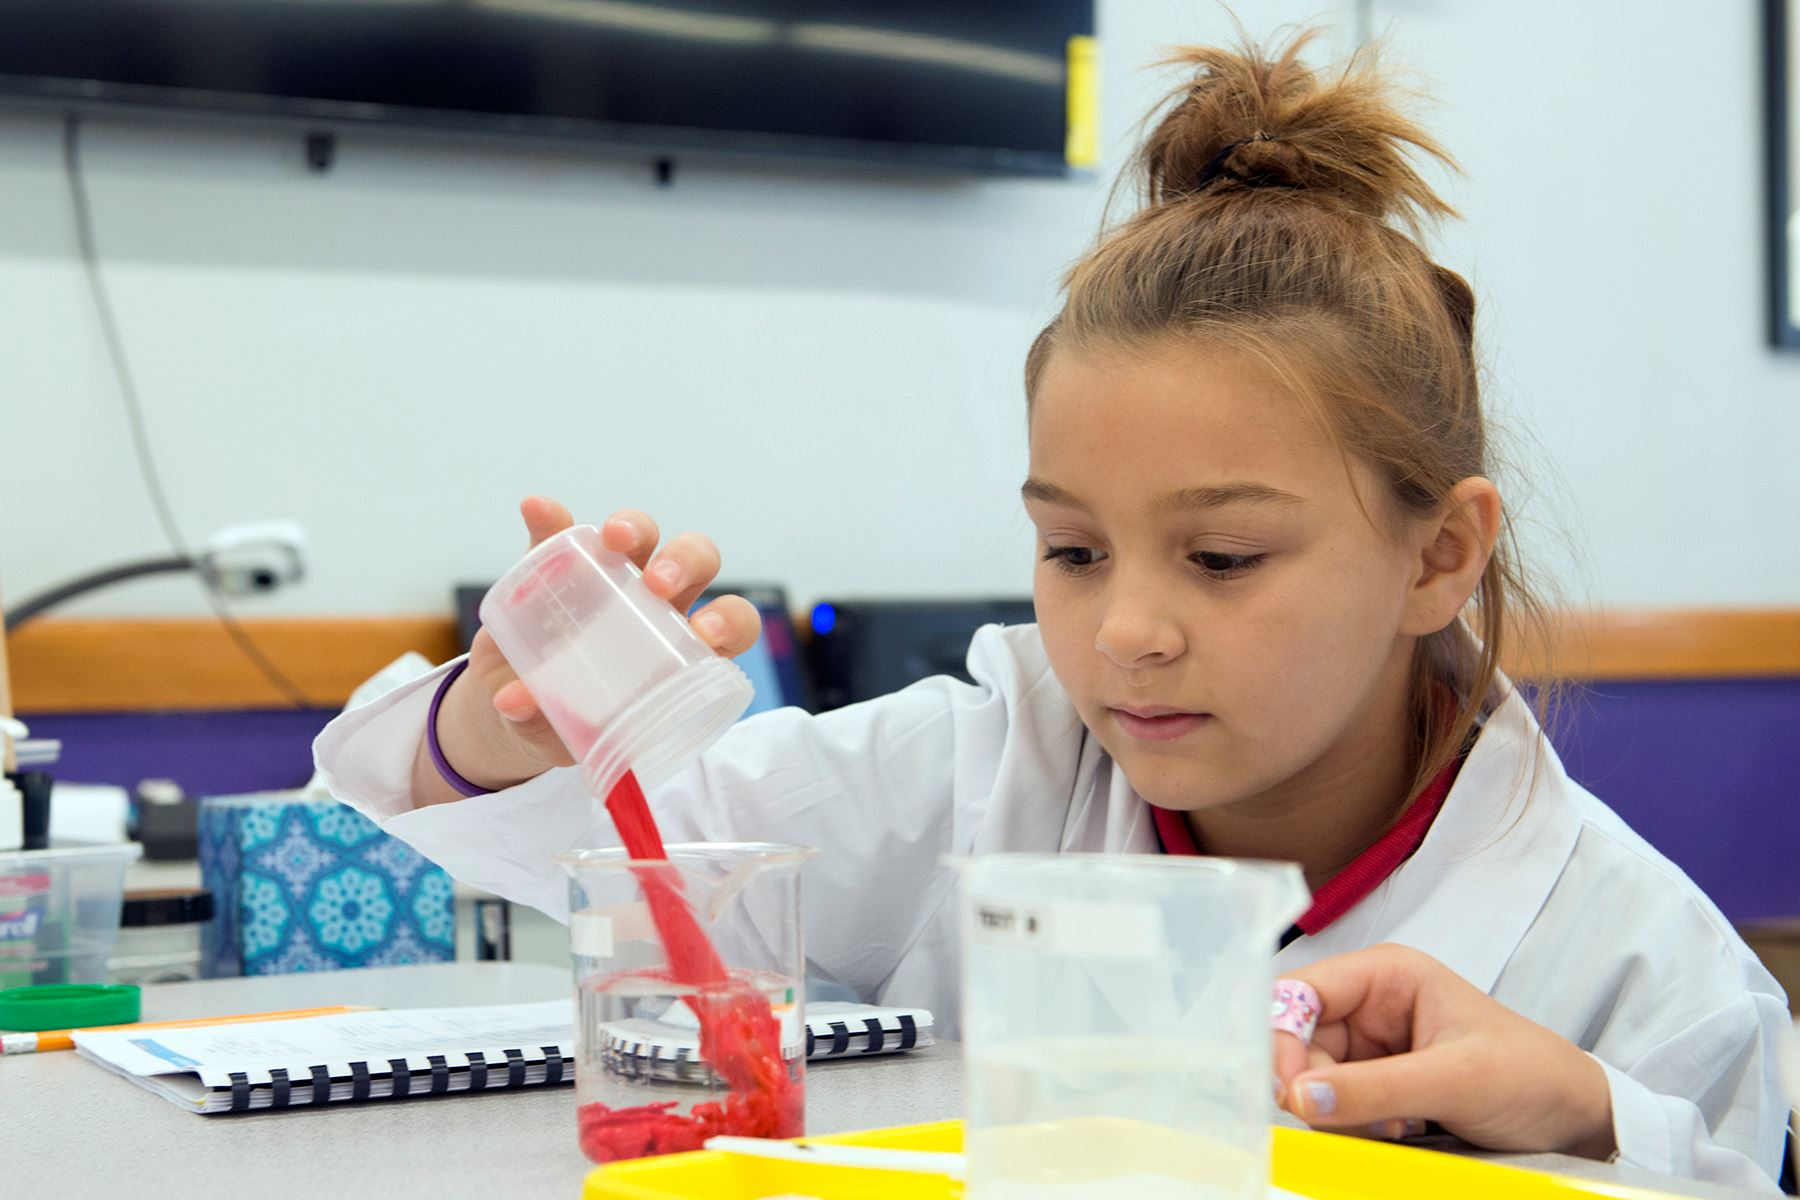 Young girl performing a science experiment